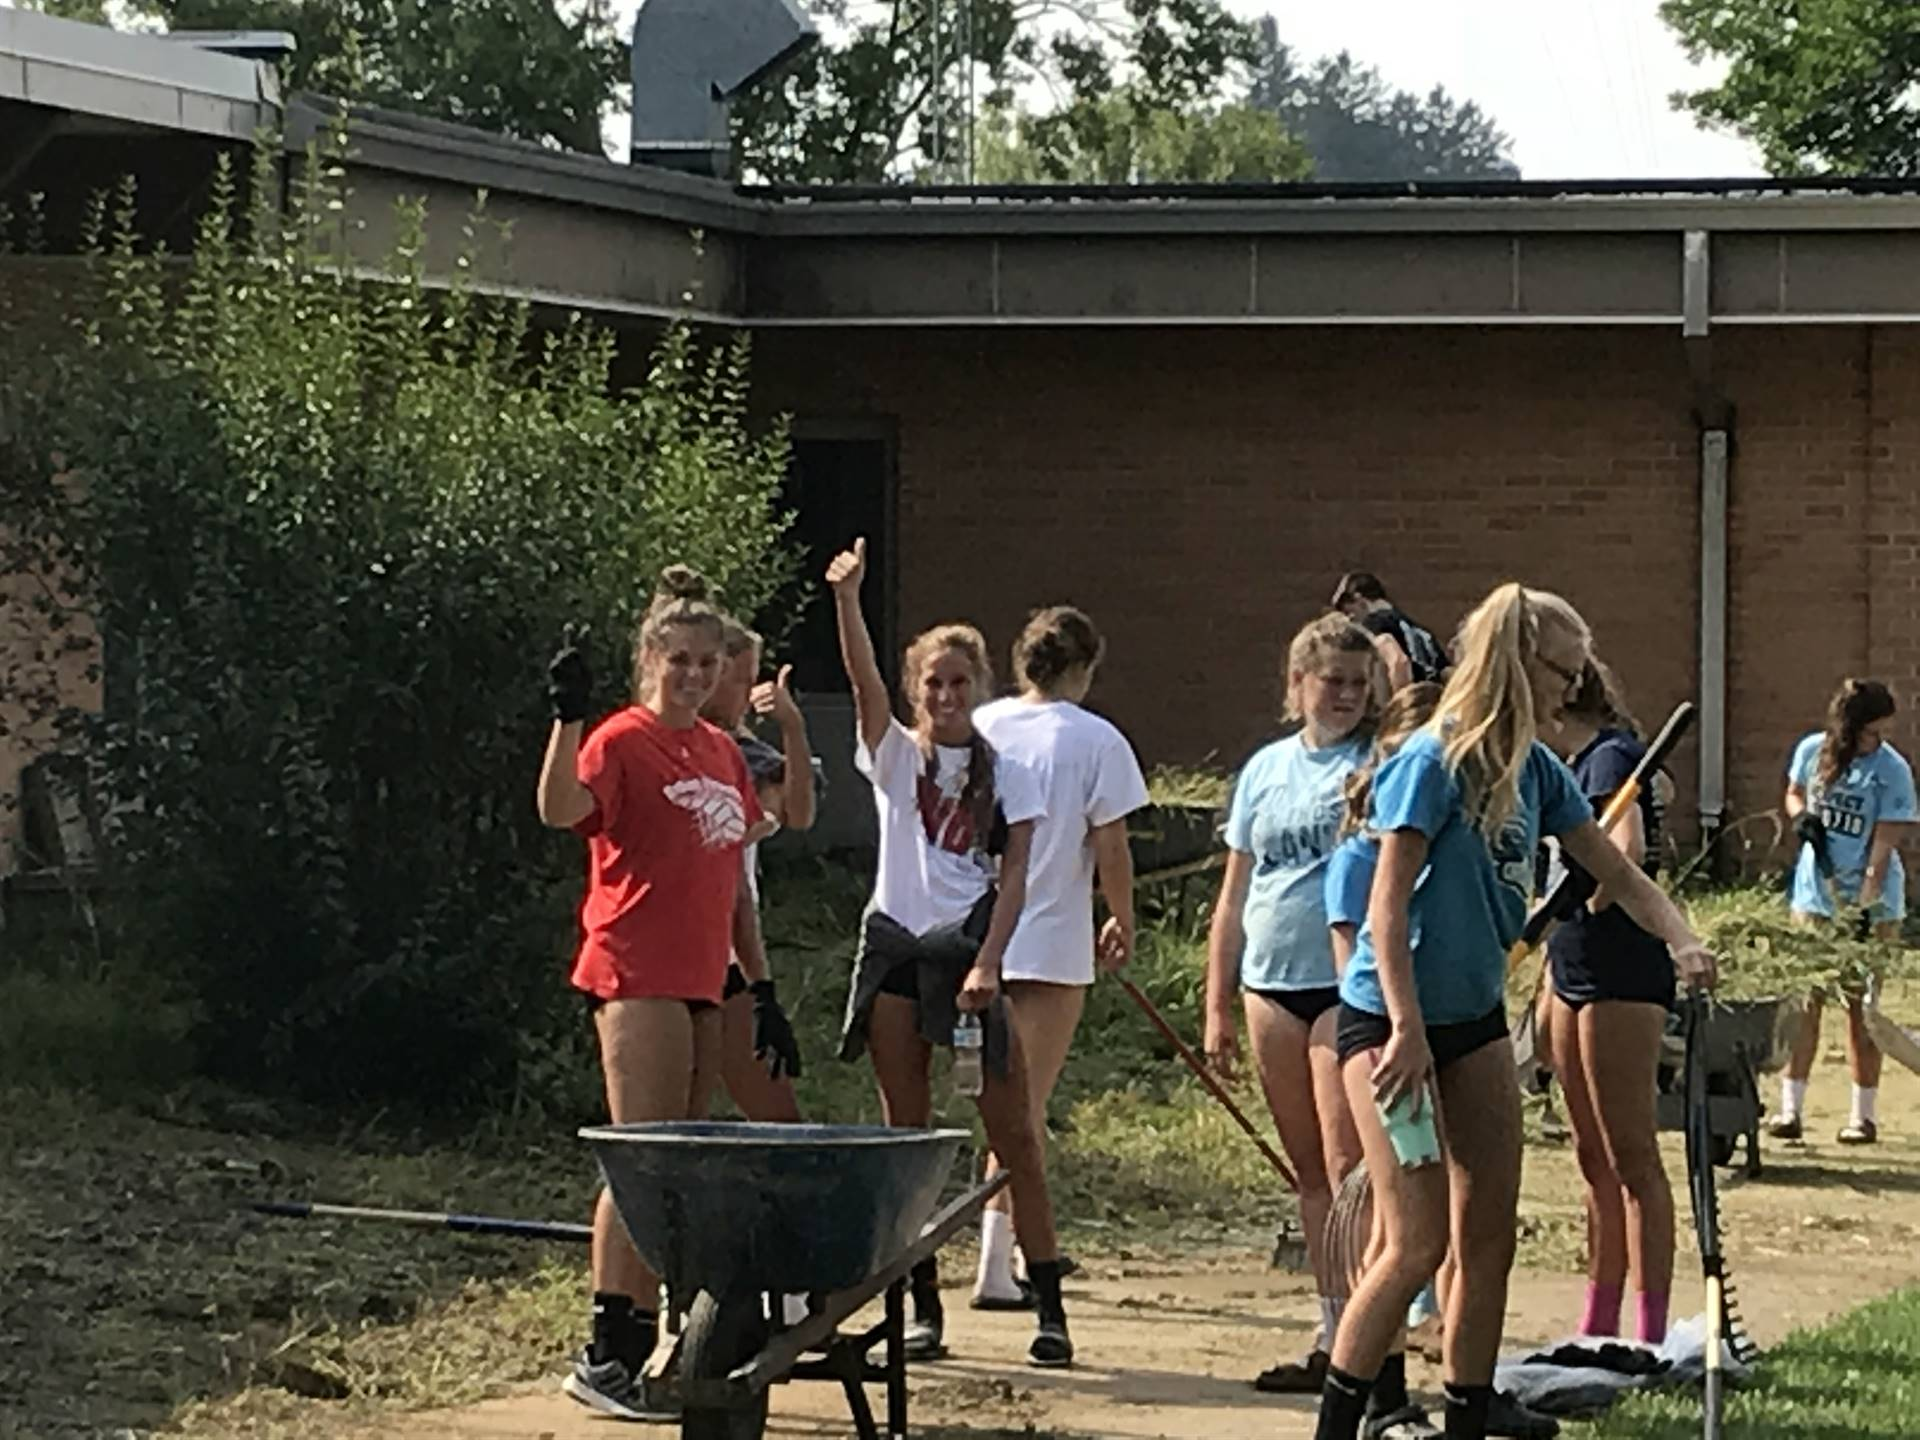 Students & Staff working during Campus Cleanup